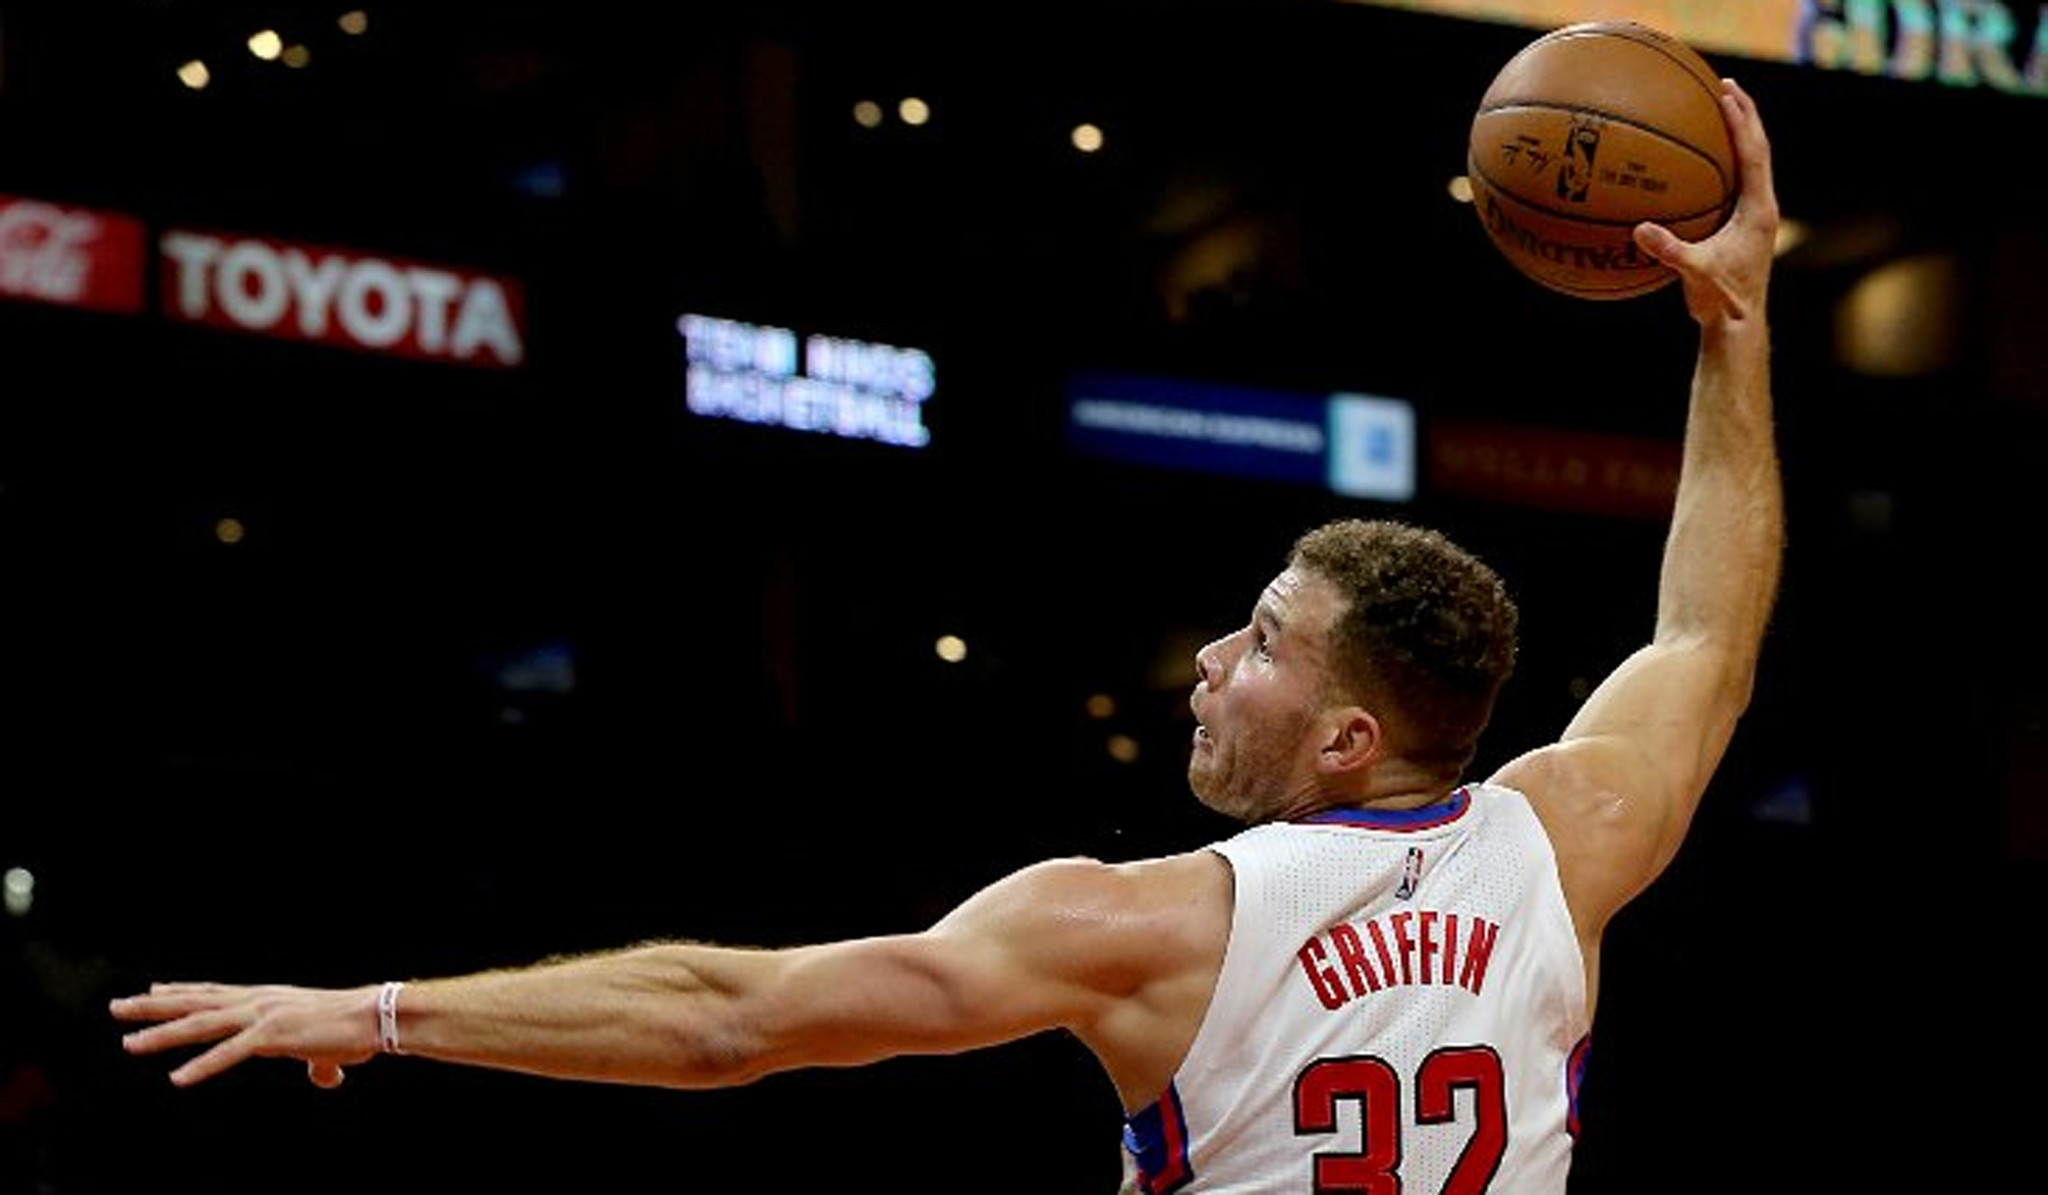 La-sp-clippers-report-20160206